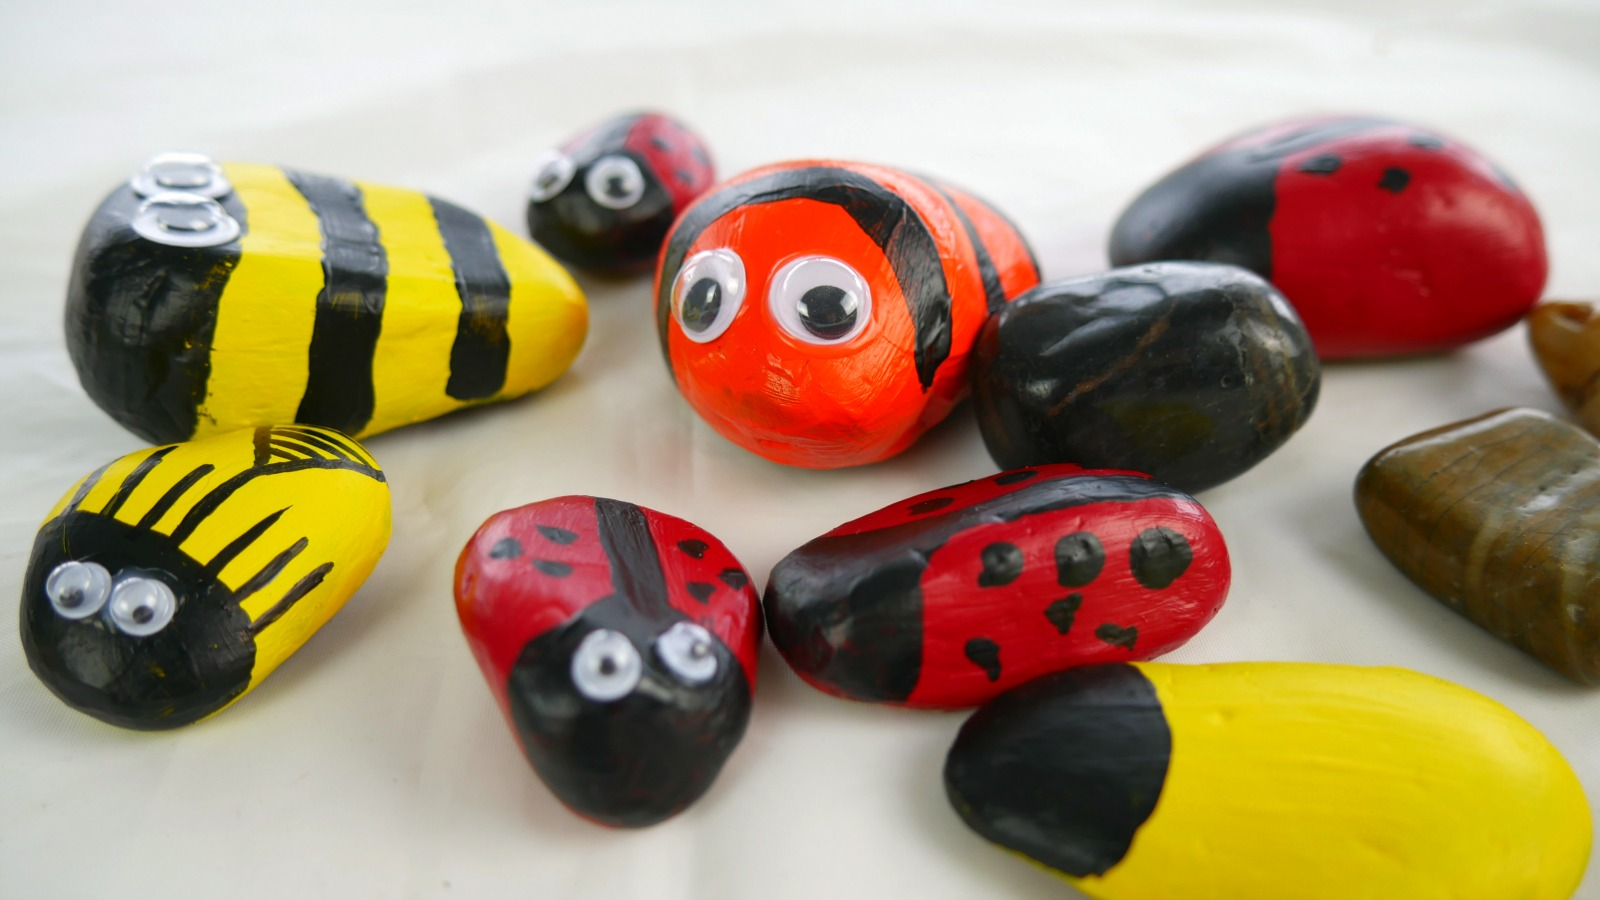 These rock bugs and beetles will make you smile